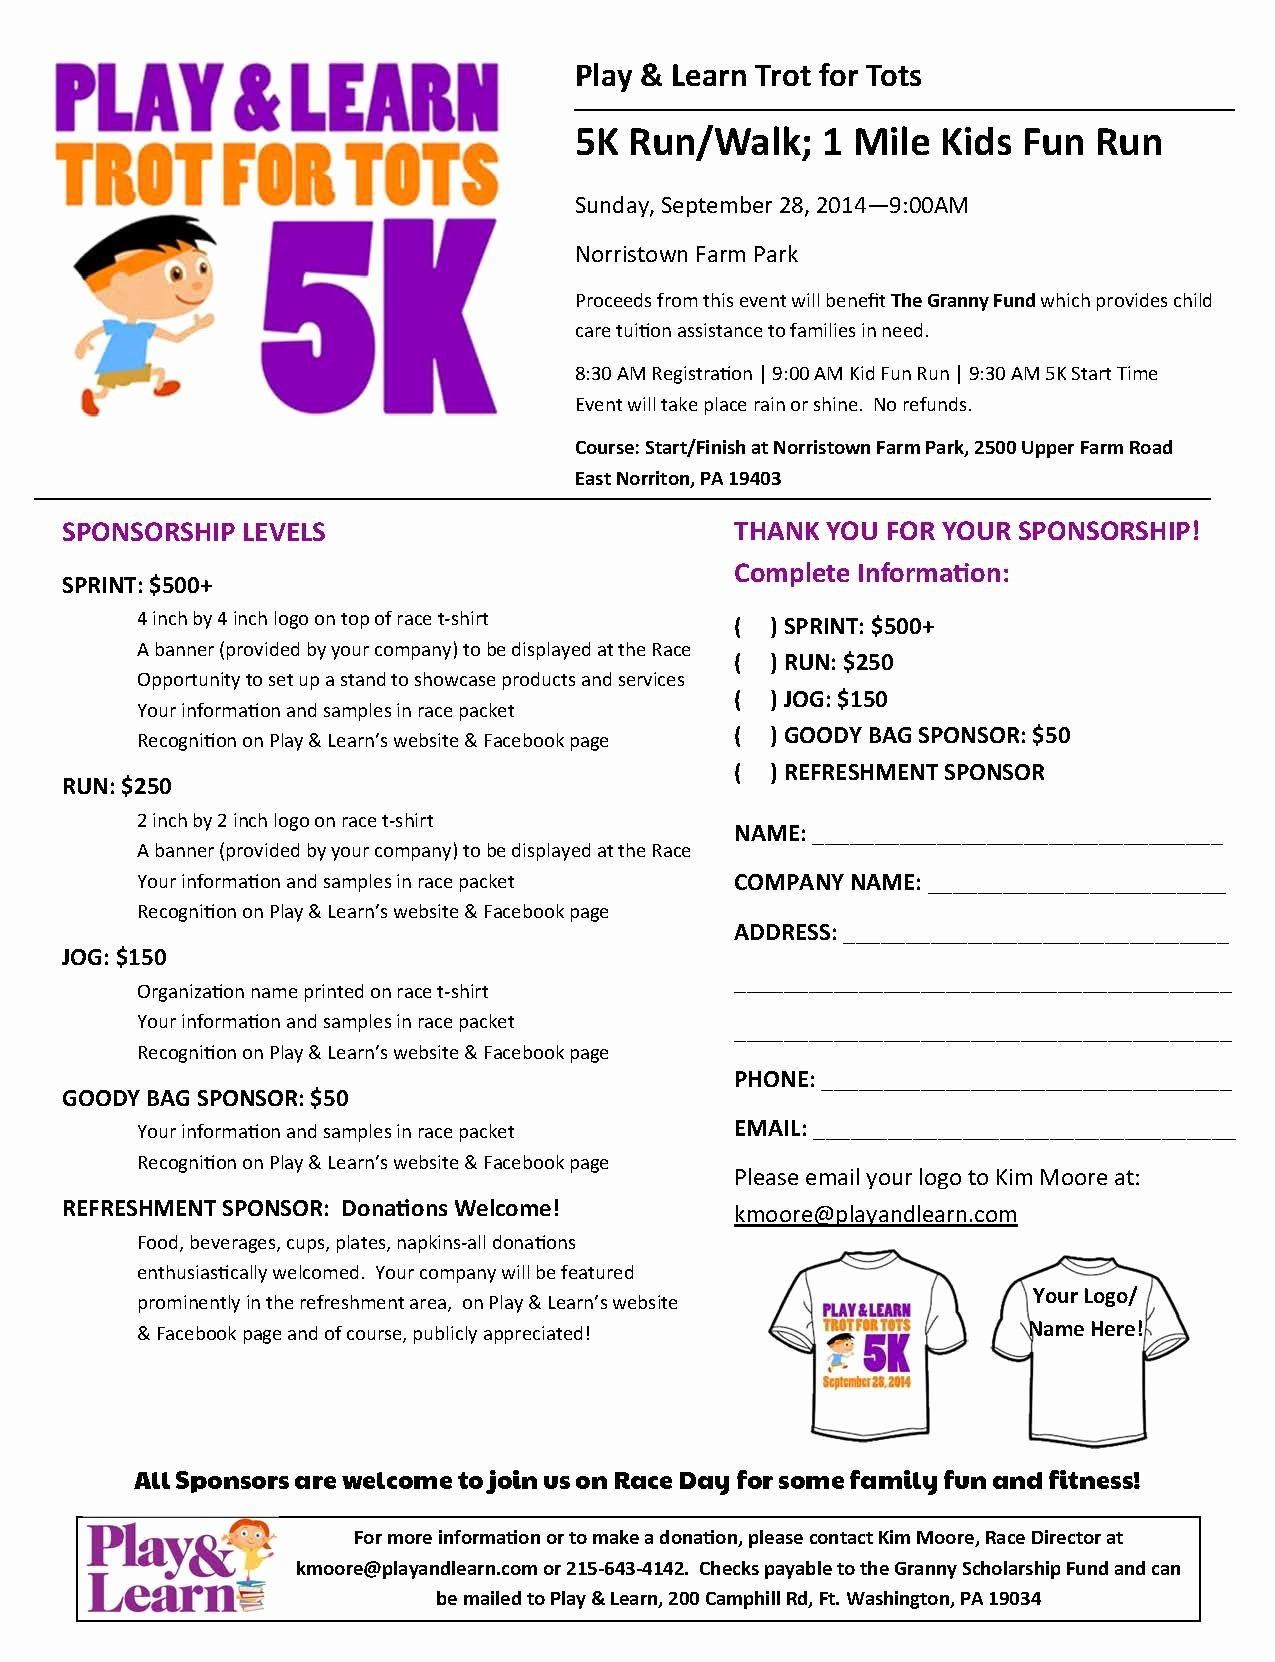 5k Race Registration form Template New Sponsor form for Play & Learns 5k and Kids Fun Run Race